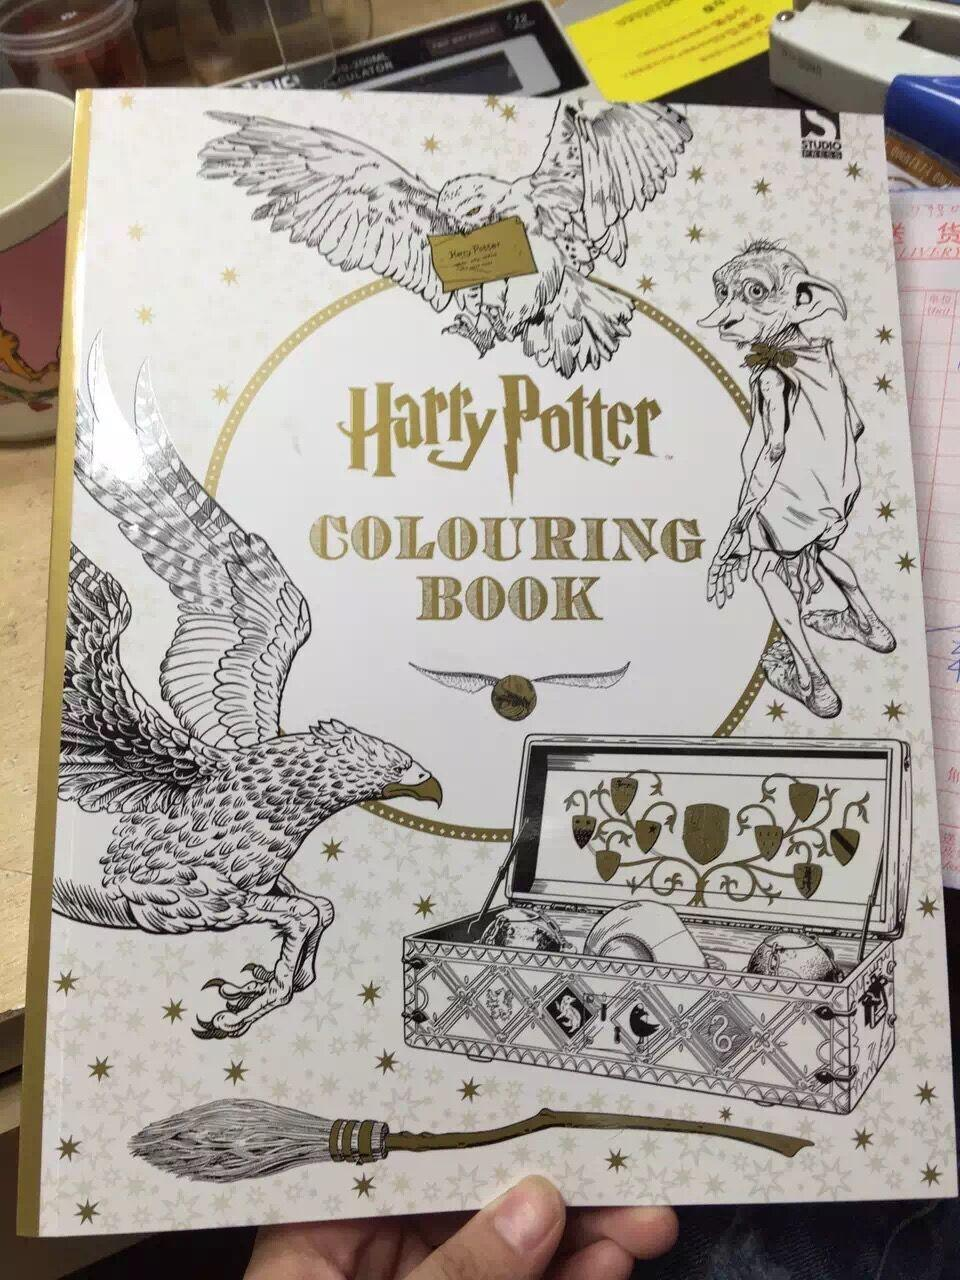 96pages harry potter coloring book books for children adult secret garden series kill time painting drawing books free coloring books kids coloring book - Harry Potter Coloring Books